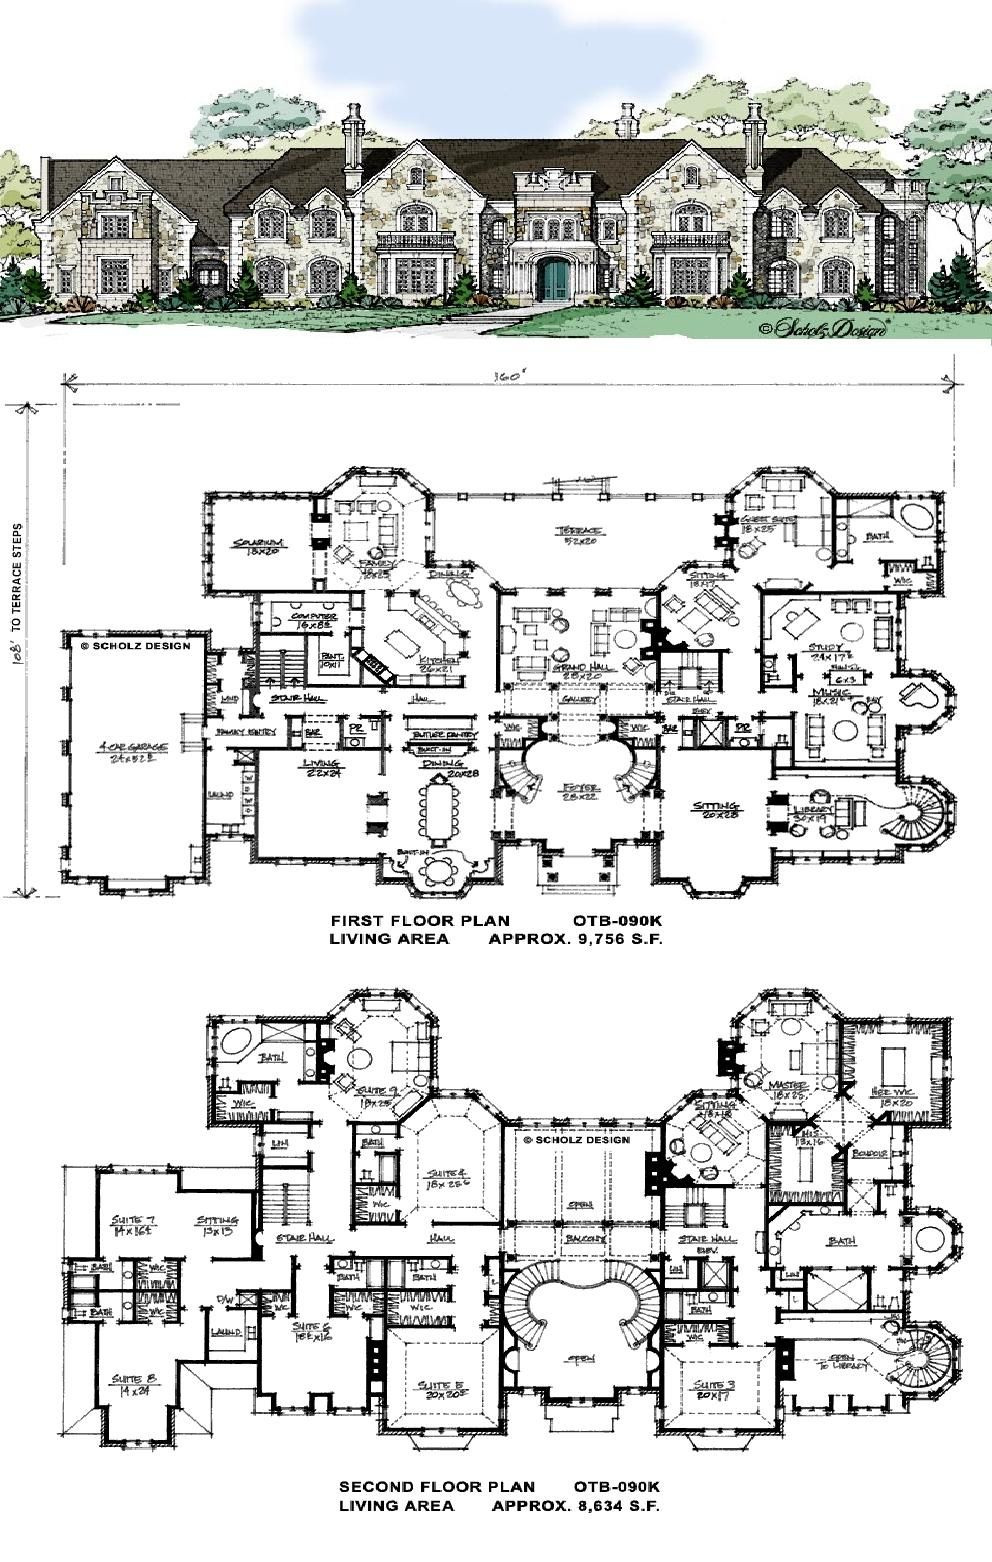 Mansion House Plans 8 Bedrooms Lovely Love the Flowing Symmetry Defined Rooms Including Study